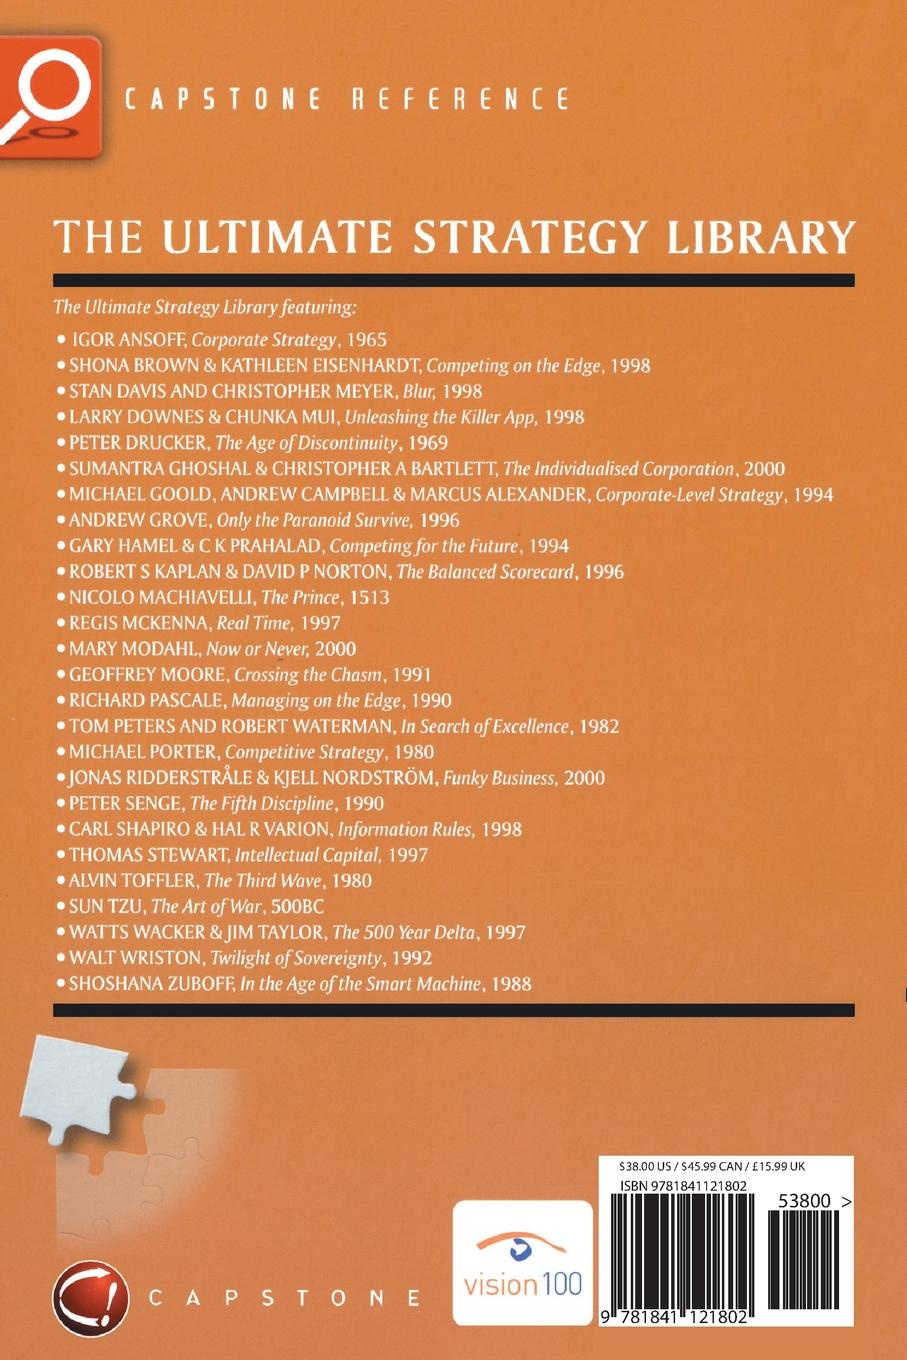 John Middleton, Middleton The Ultimate Strategy Library. The 50 Most Influential Strategic Ideas of All Time blender 50 worst songs of all time